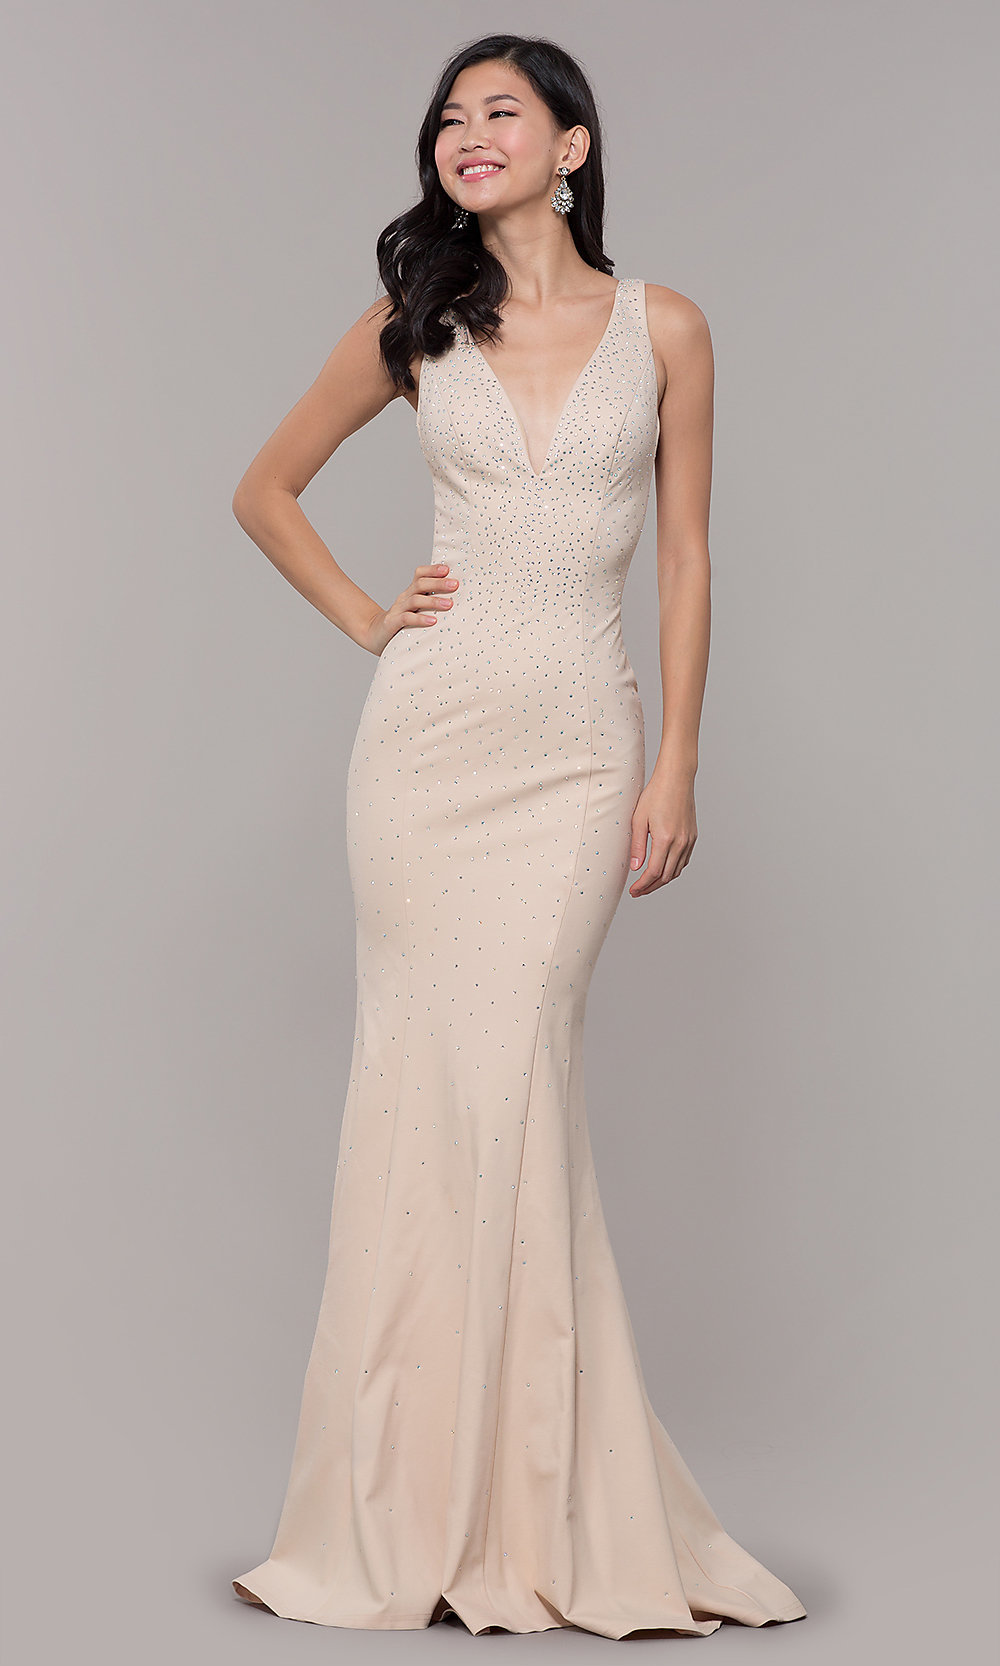 Long Nude V-Neck Prom Dress with Beaded Bodice